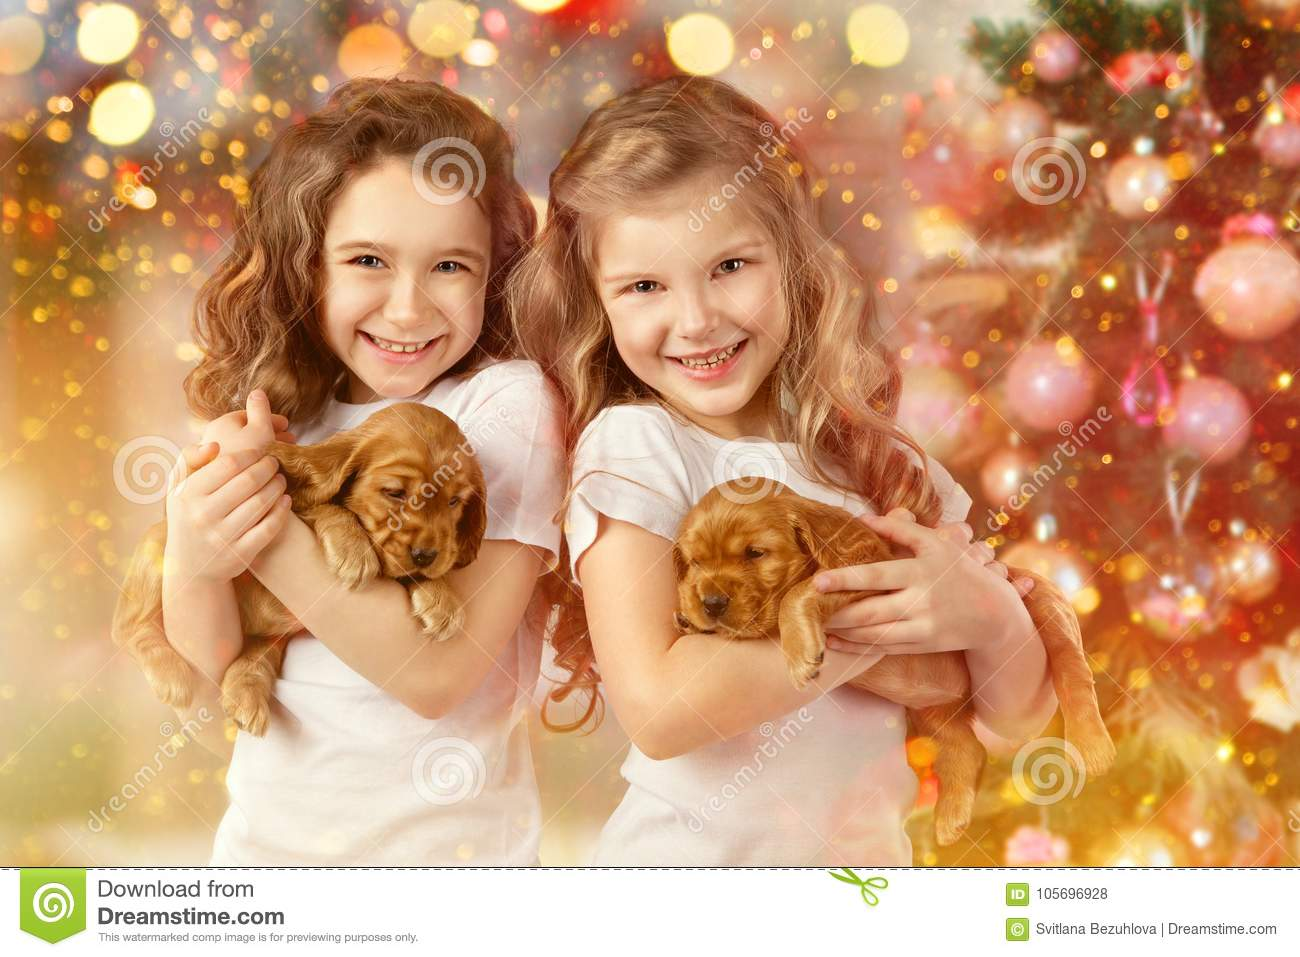 Happy children and dogs beside Christmas tree. New year 2018. Holiday concept, Christmas, New year background.